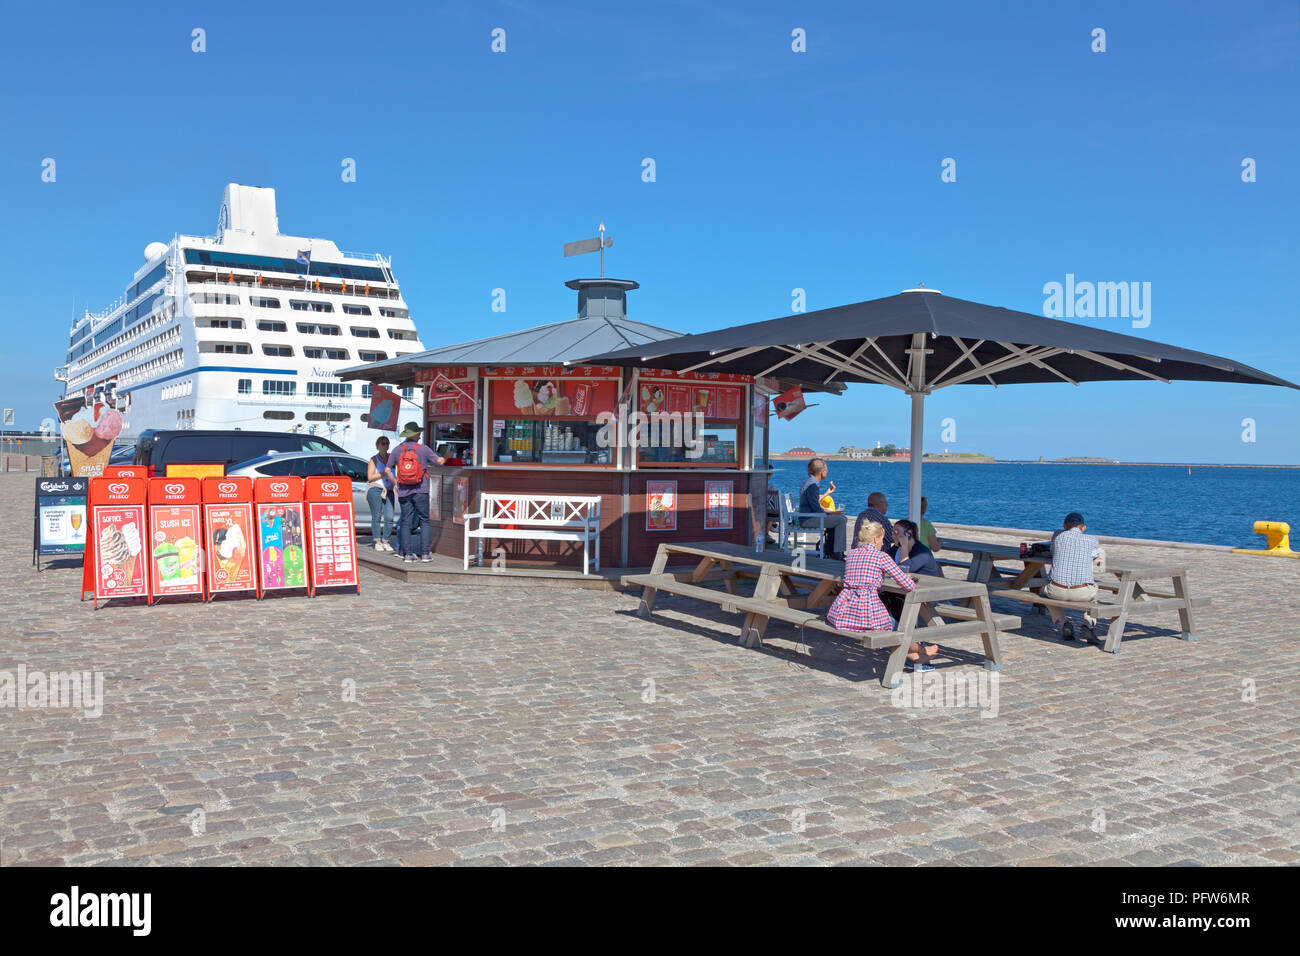 Ice and refreshment stall on the Langelinie pier in the harbour of Copenhagen in late summer. Cruise ship NAUTICA moored at the Langelinie quay. Stock Photo